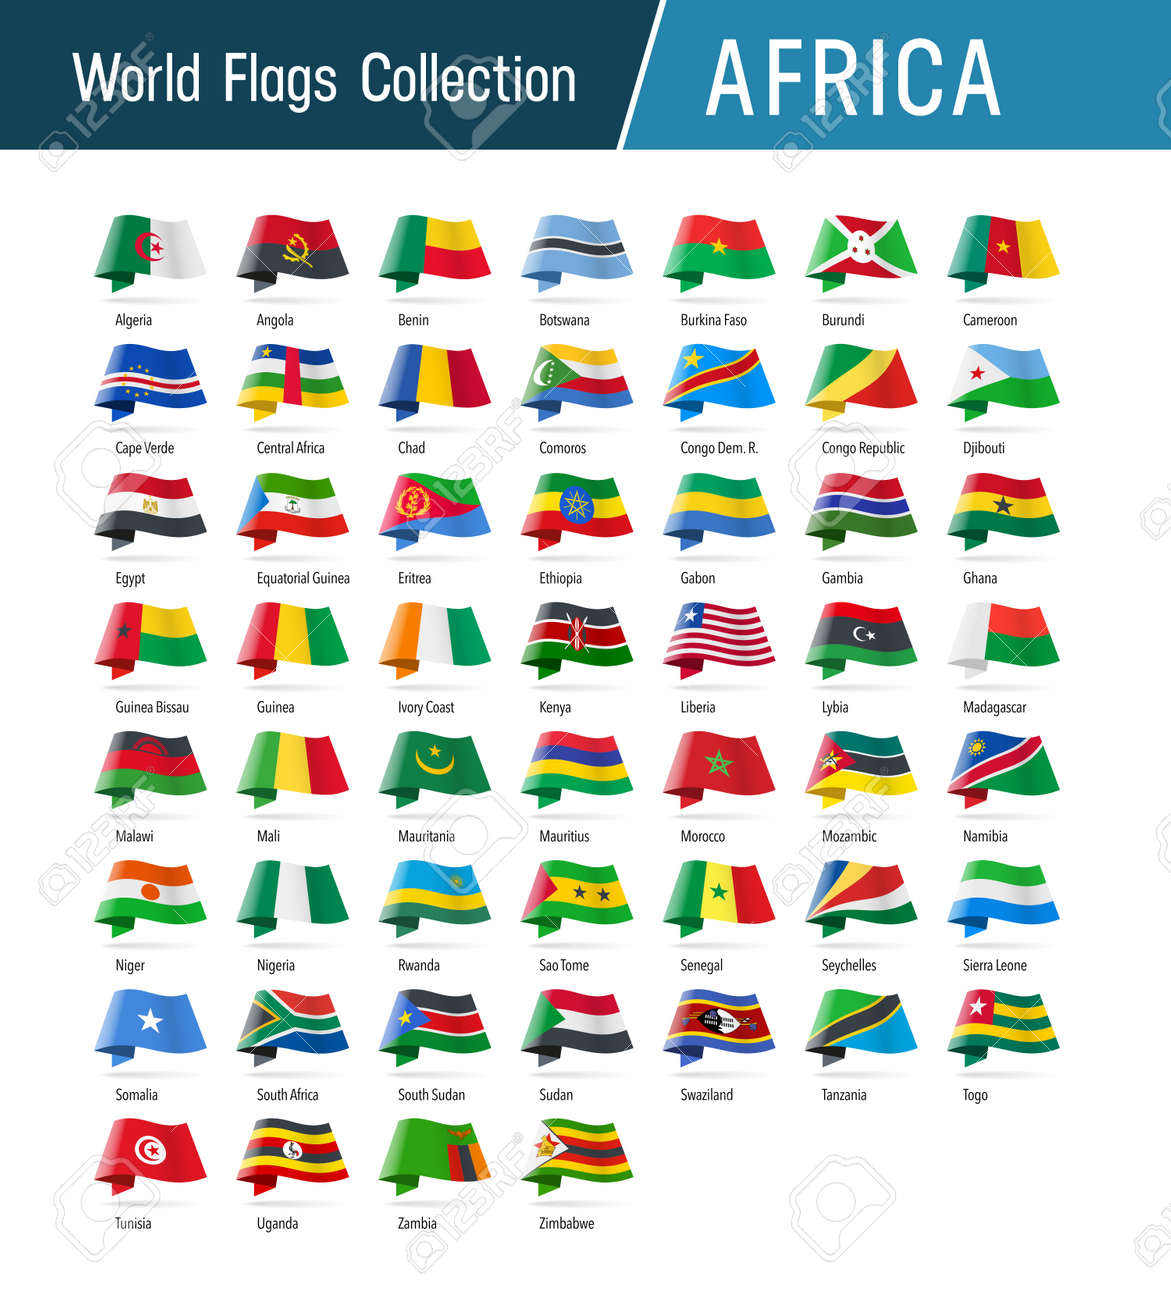 Flags of Africa, waving in the wind. Icons pointing location, origin, language. Vector world flags collection. - 163394673